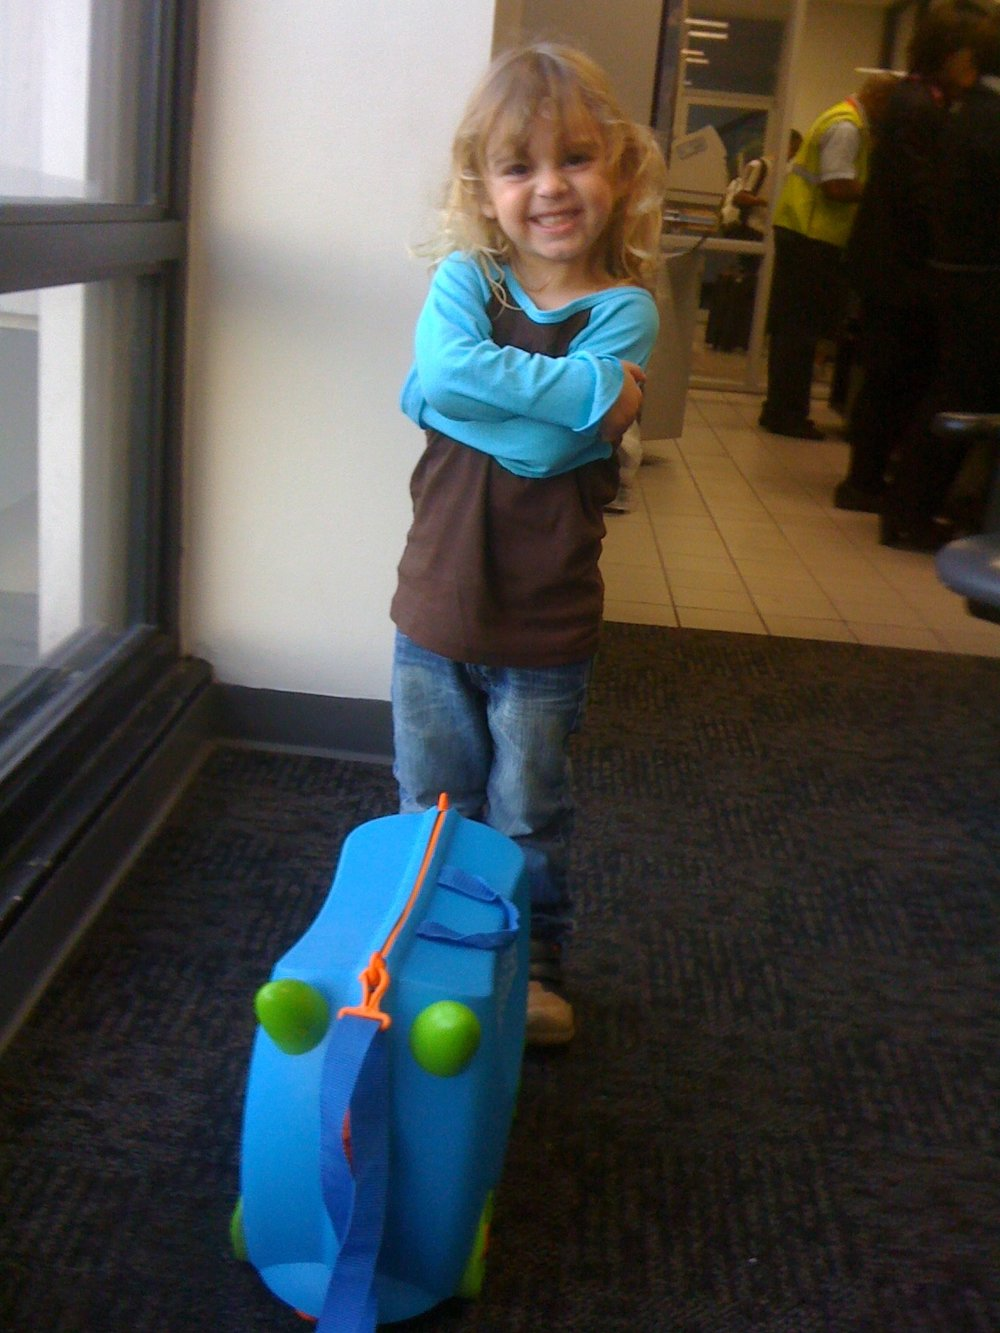 Looking for a carry-on for my son, I found Trunki; a total hit that makes everybody smile, from parents and children to the safety personnel at airports. It can also be pulled while the kid sits on top, comes in different colors and with stickers. Photo: Bruny Nieves